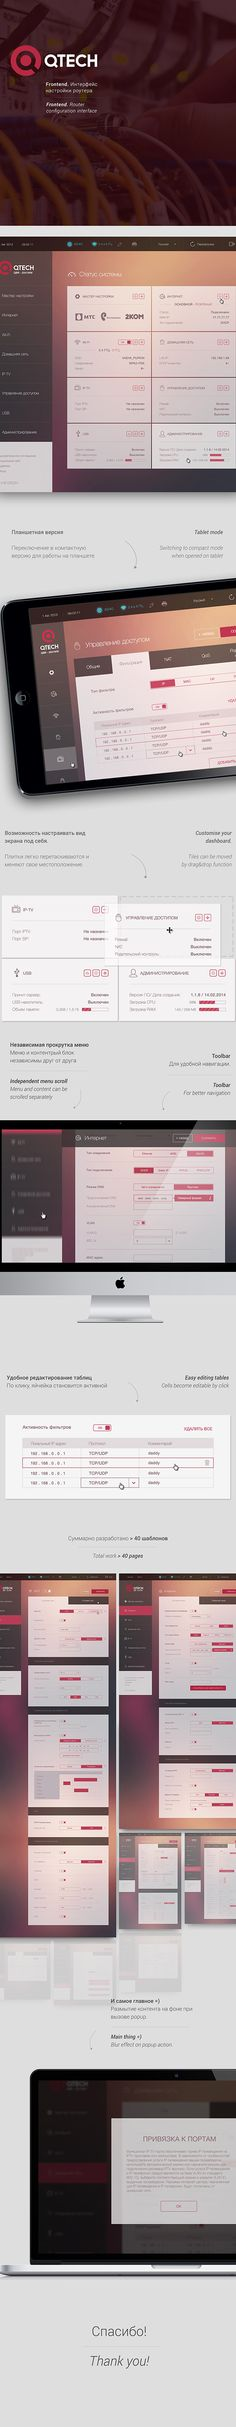 QTECH - Router configuration interface by Bogdan Kazakov, via Behance Web Dashboard, Dashboard Design, Ui Web, Web Design Trends, Web Ui Design, Flat Design, Gui Interface, User Interface Design, Web Mobile